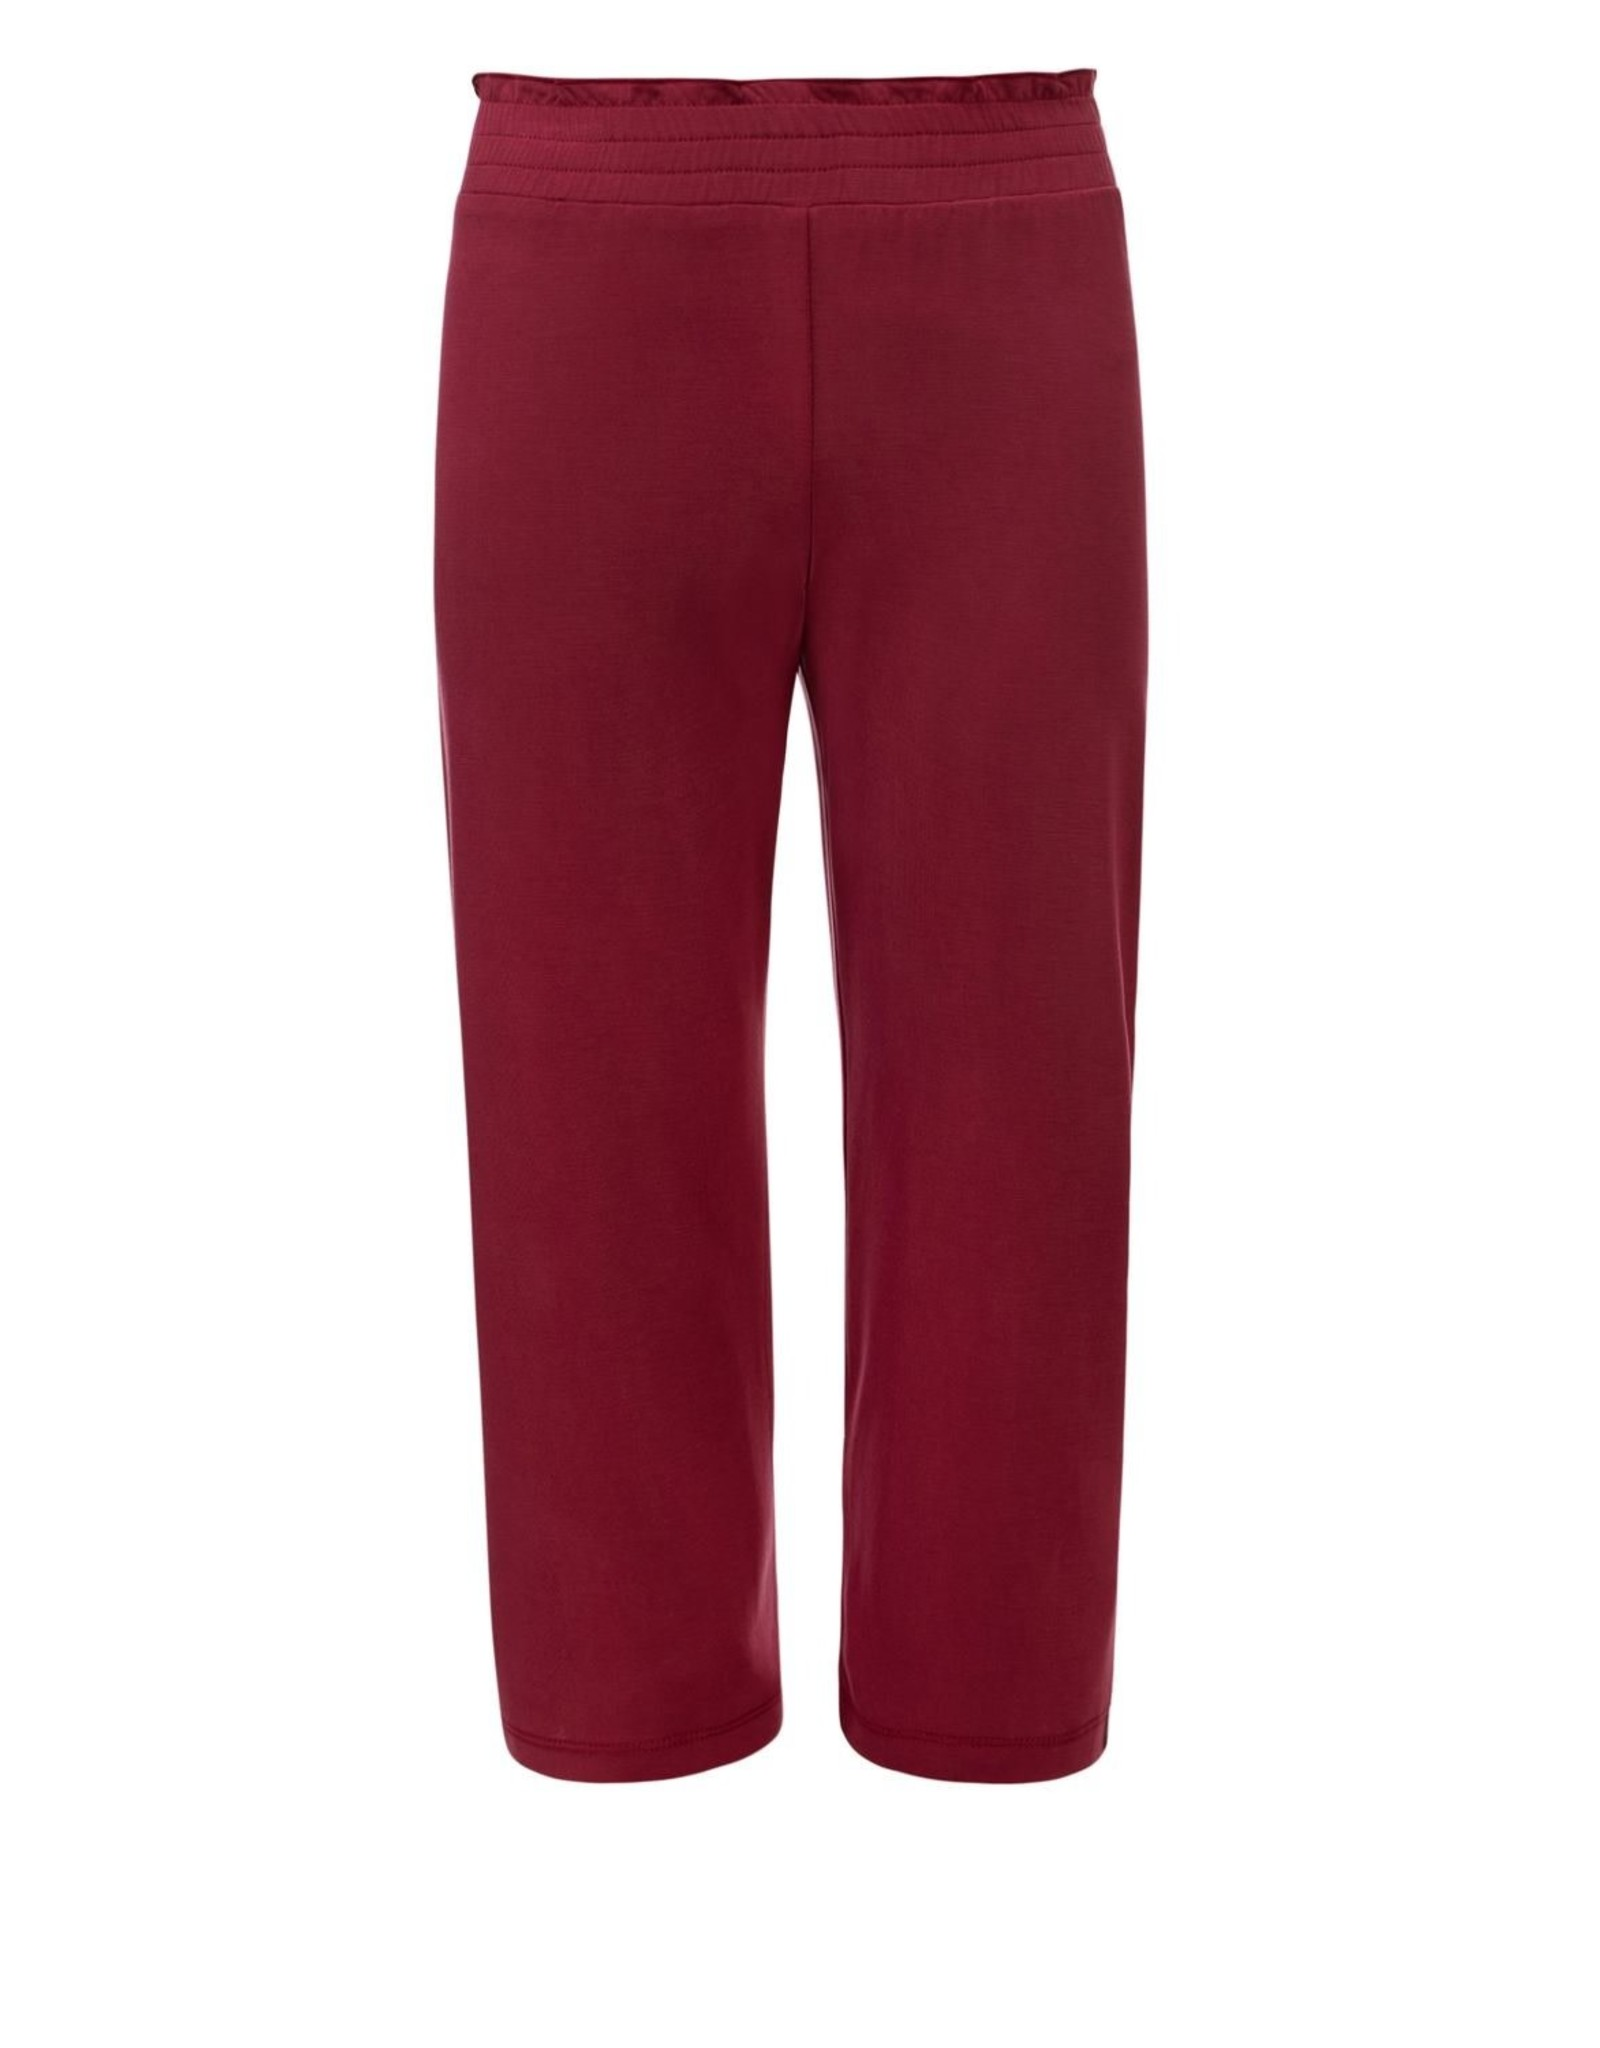 Looxs Girls wide leg culotte pants Ruby